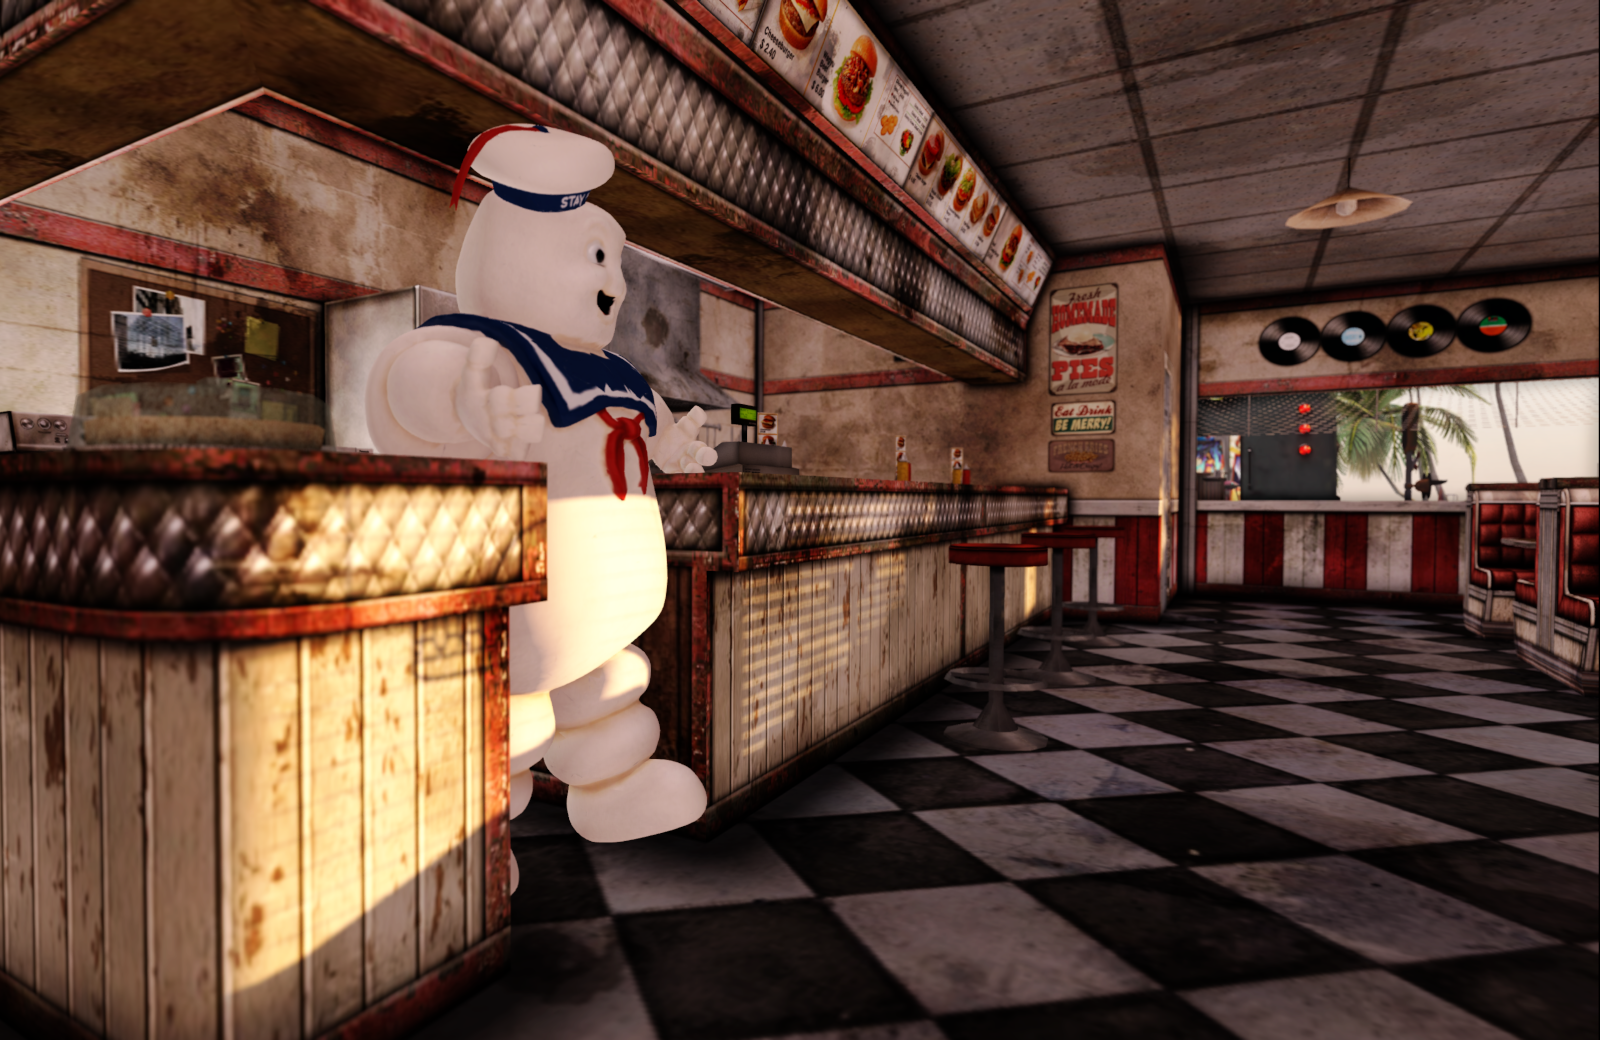 The restaurant and the marshmallow man